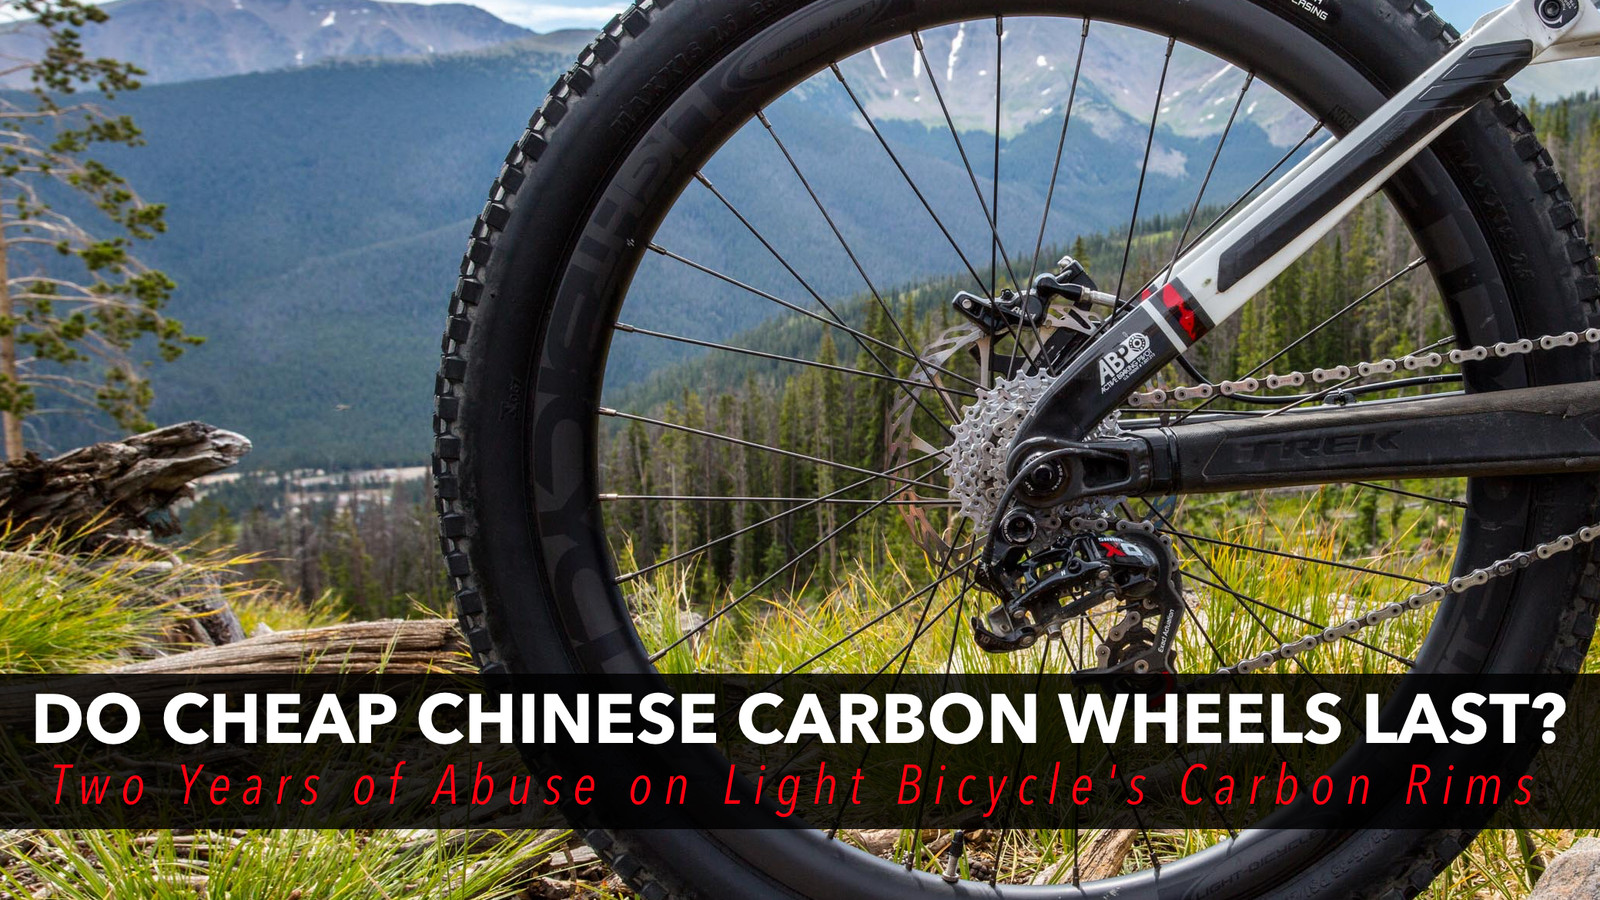 Do Cheap Chinese Carbon Wheels Last? Two Years of Abuse on Light Bicycle's Carbon Rims